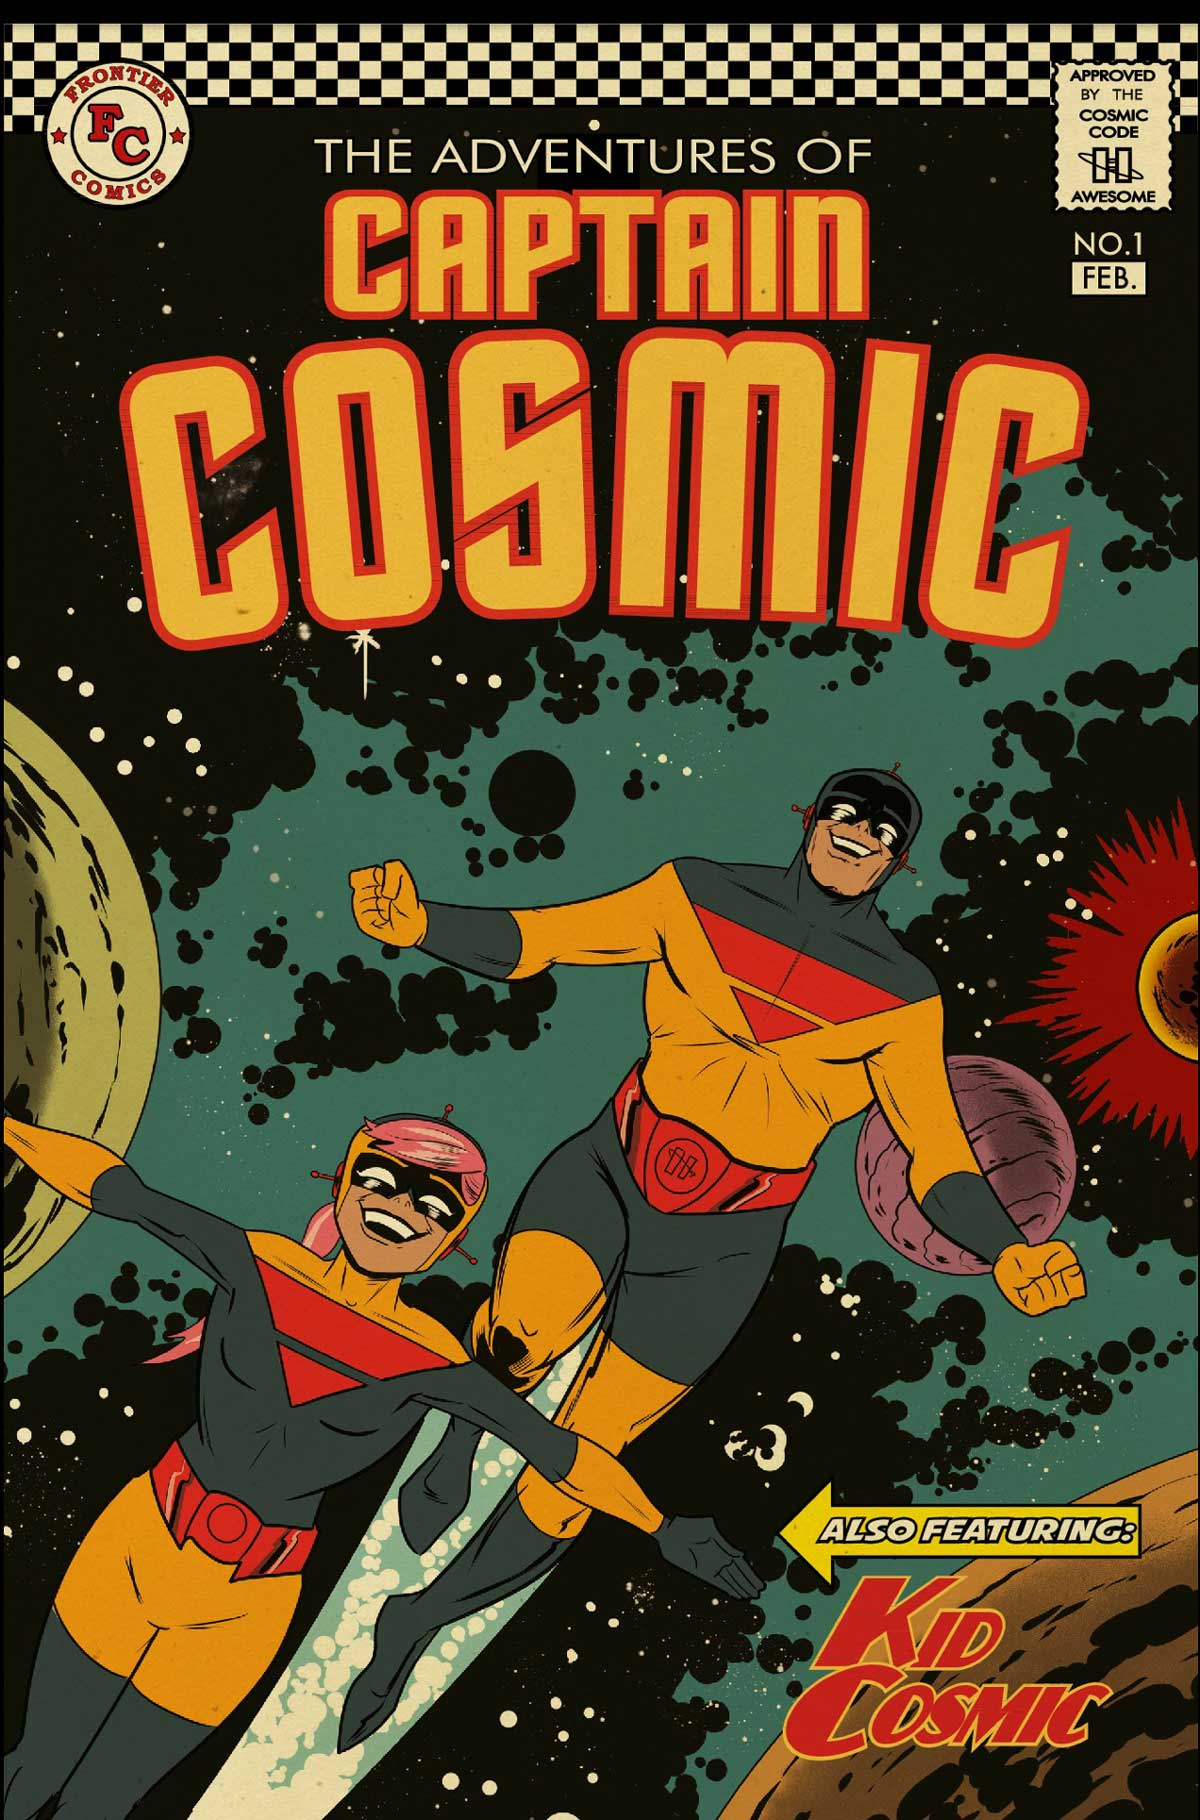 The Adventures of Captain Cosmic #1 - Cover